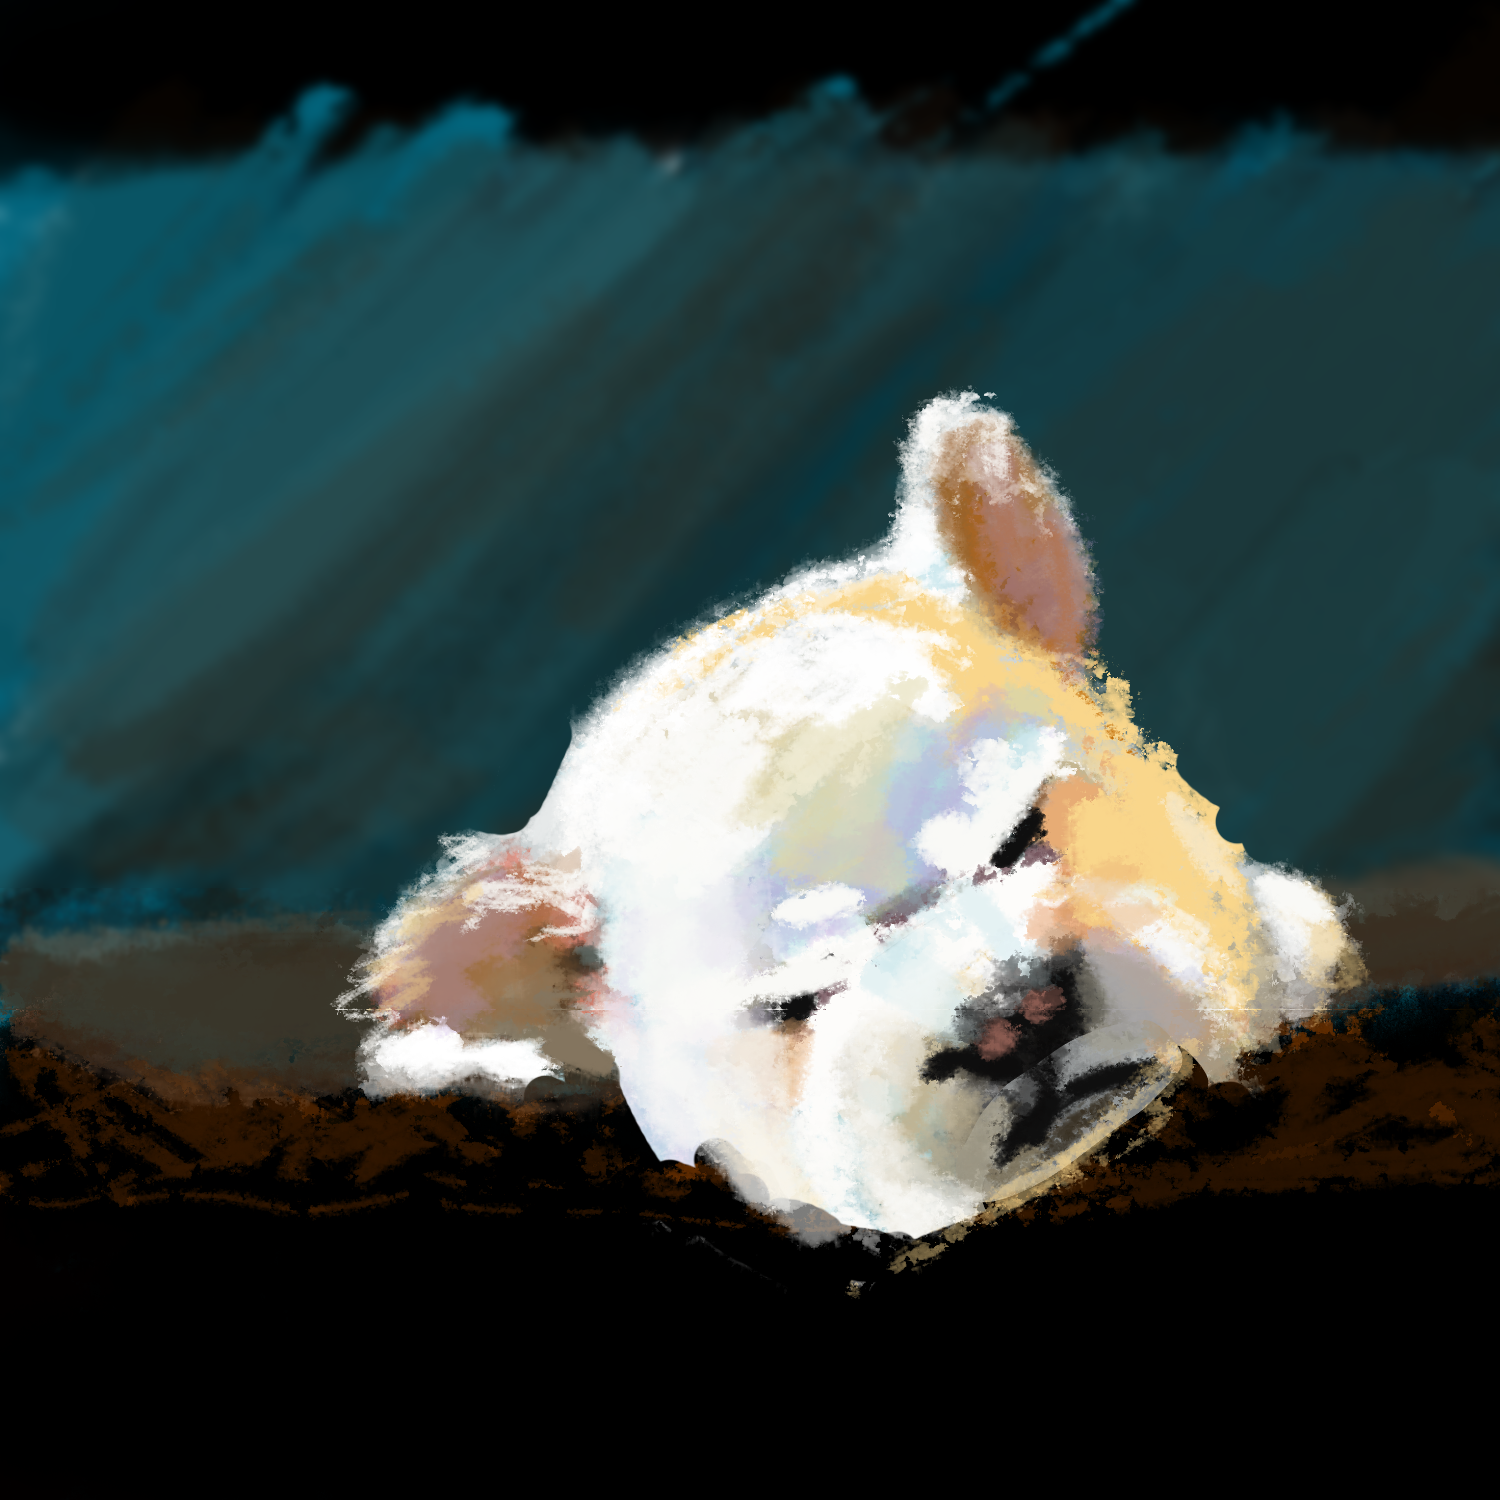 I saw this adorable dog online and did a quick paint study of it.